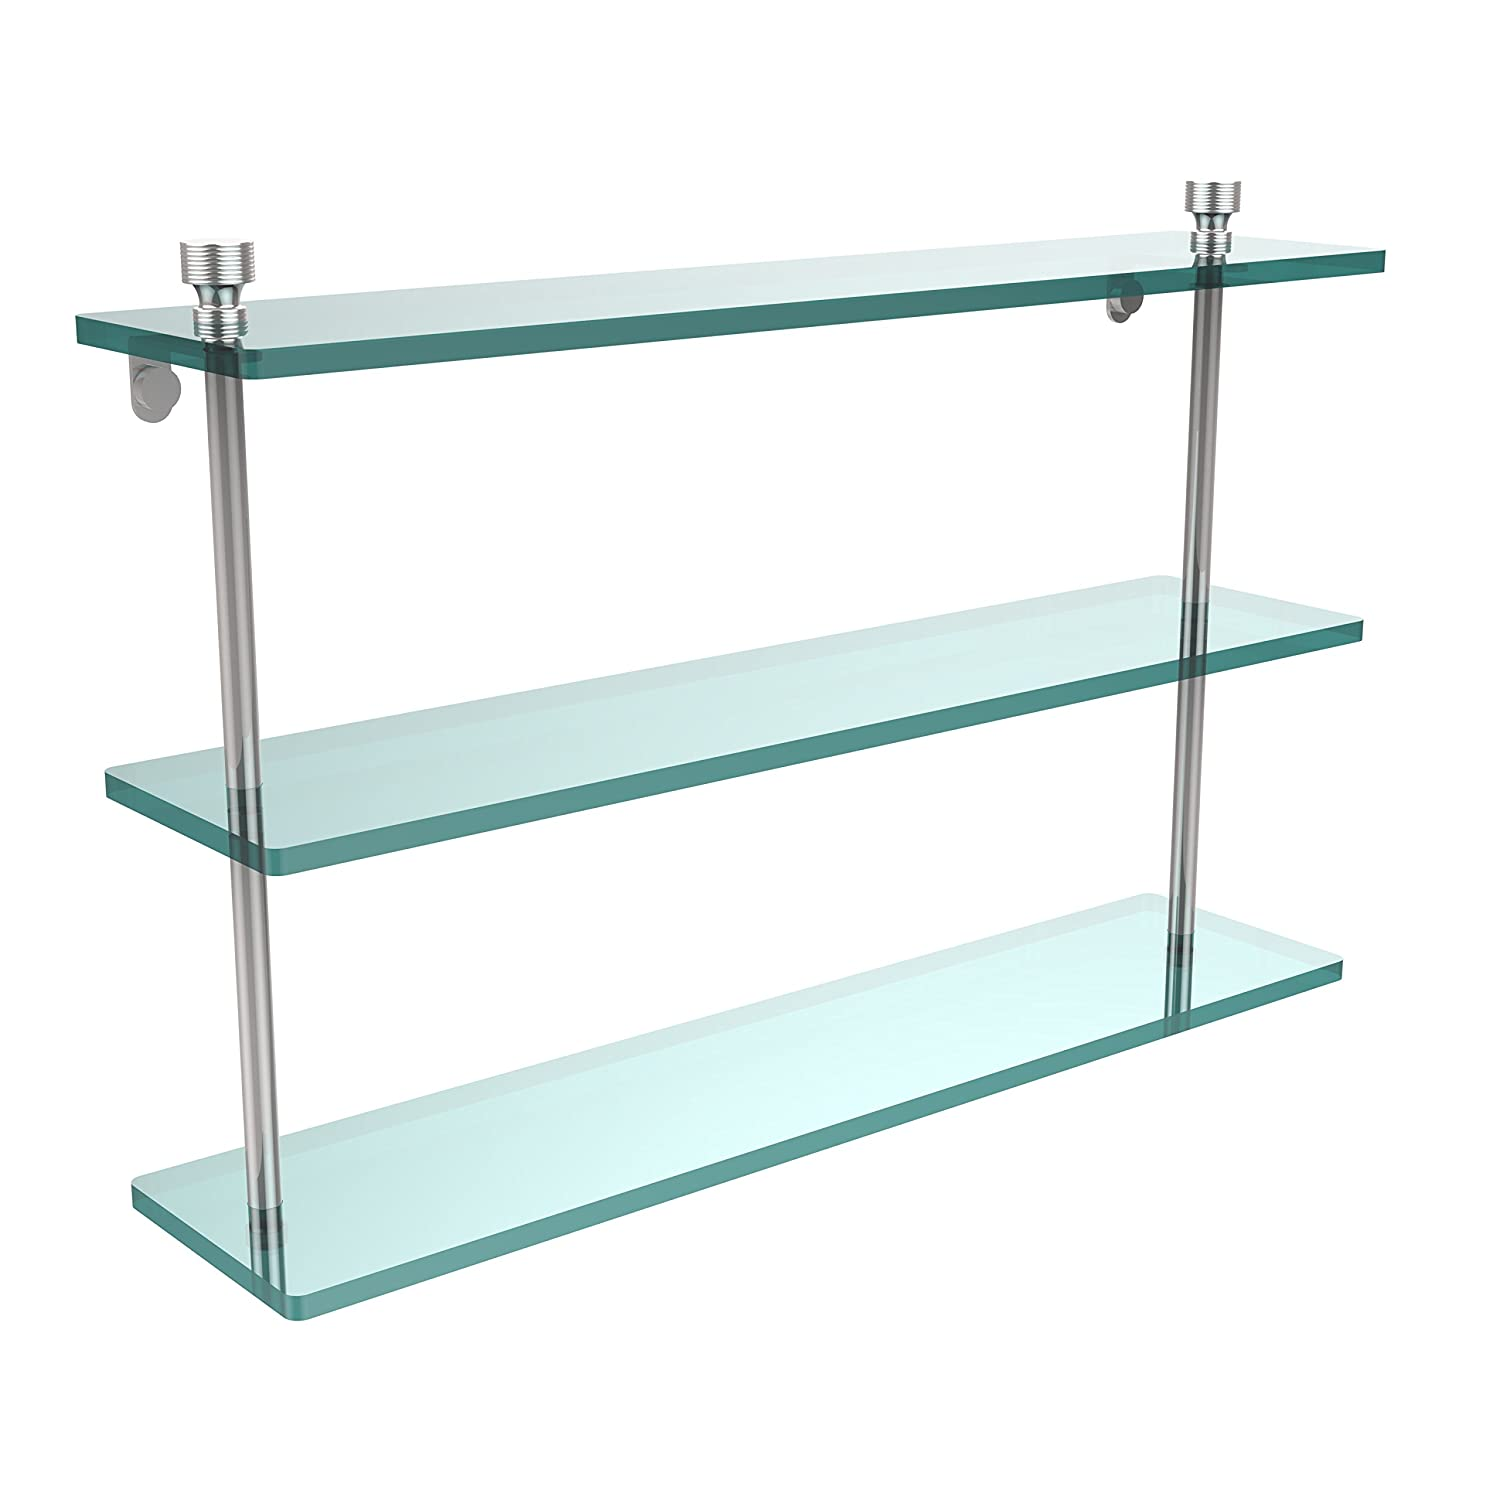 Polished Nickel Allied Brass FT-5//22-PNI Foxtrot Collection 22 Inch Triple Tiered Glass Shelf